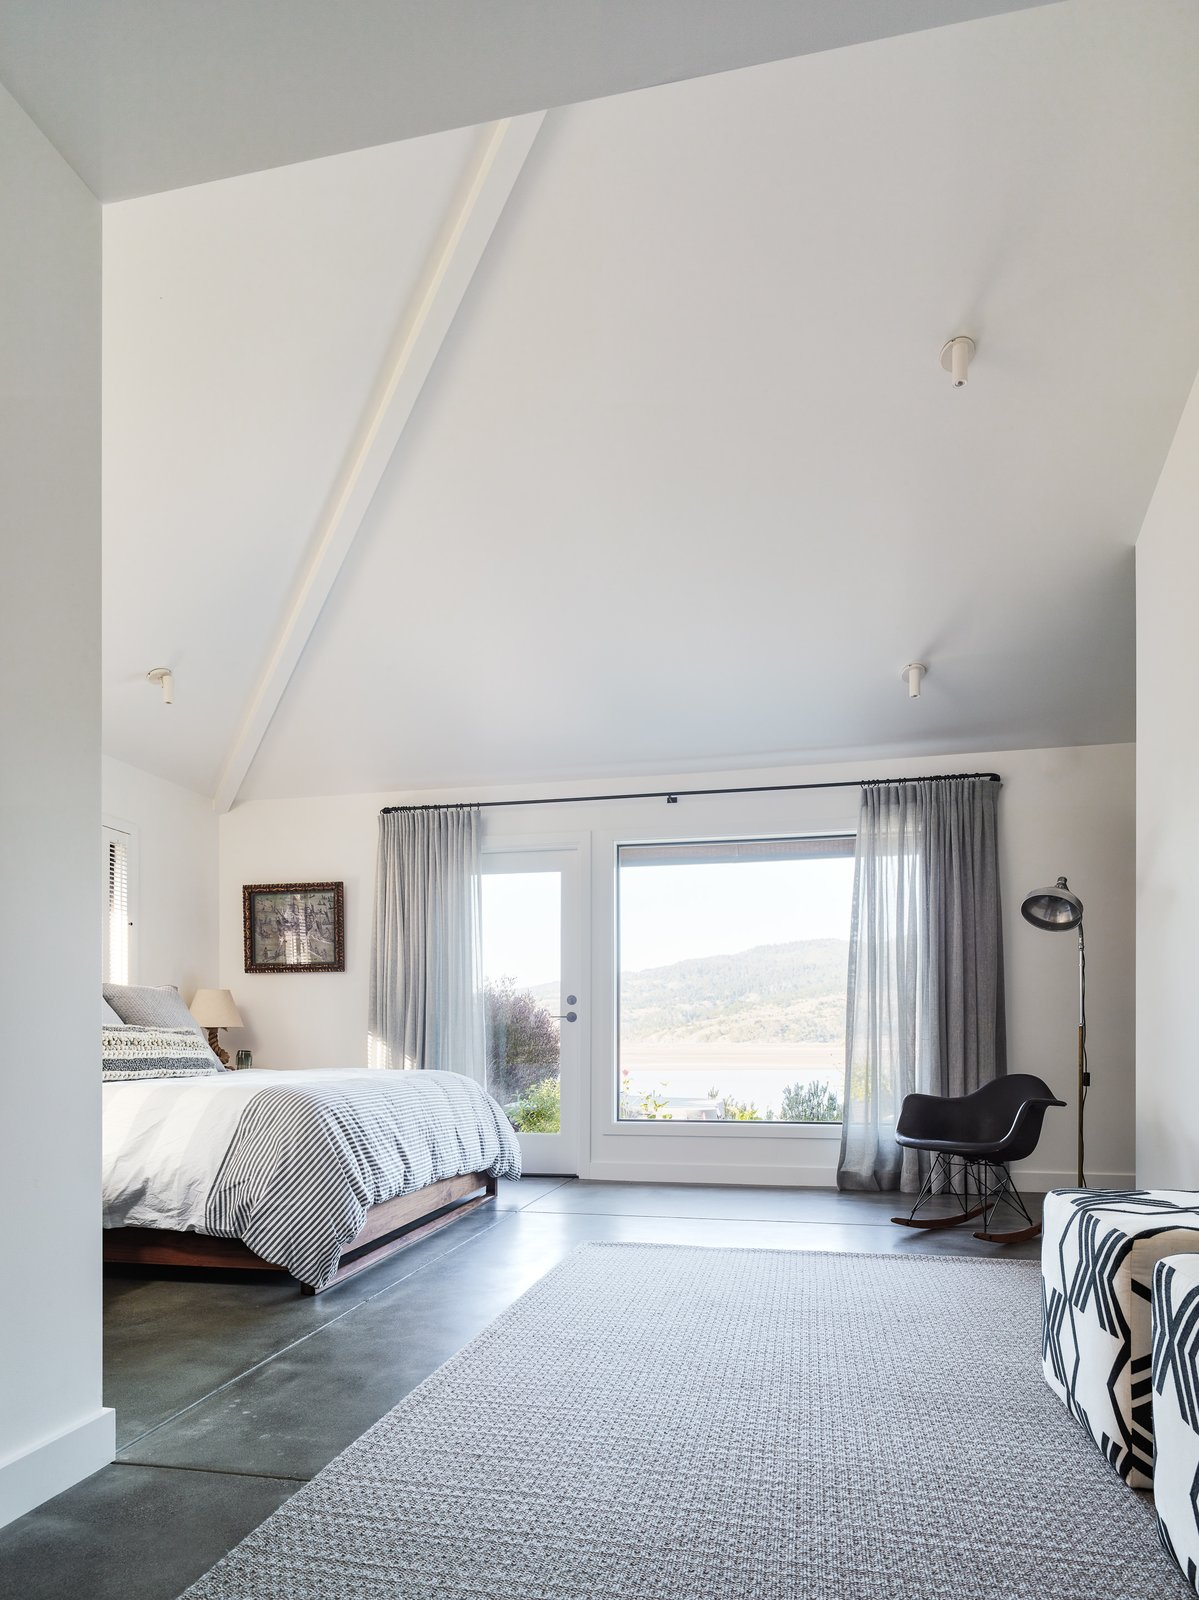 Bedroom, Bed, Floor, Chair, Rug, Table, Ceiling, Concrete, Lamps, and Rockers The bright and airy master bedroom features high ceilings and a spectacular view.  Best Bedroom Bed Rug Lamps Concrete Photos from A Delicate Renovation Revives a '70s Beach House in Northern California